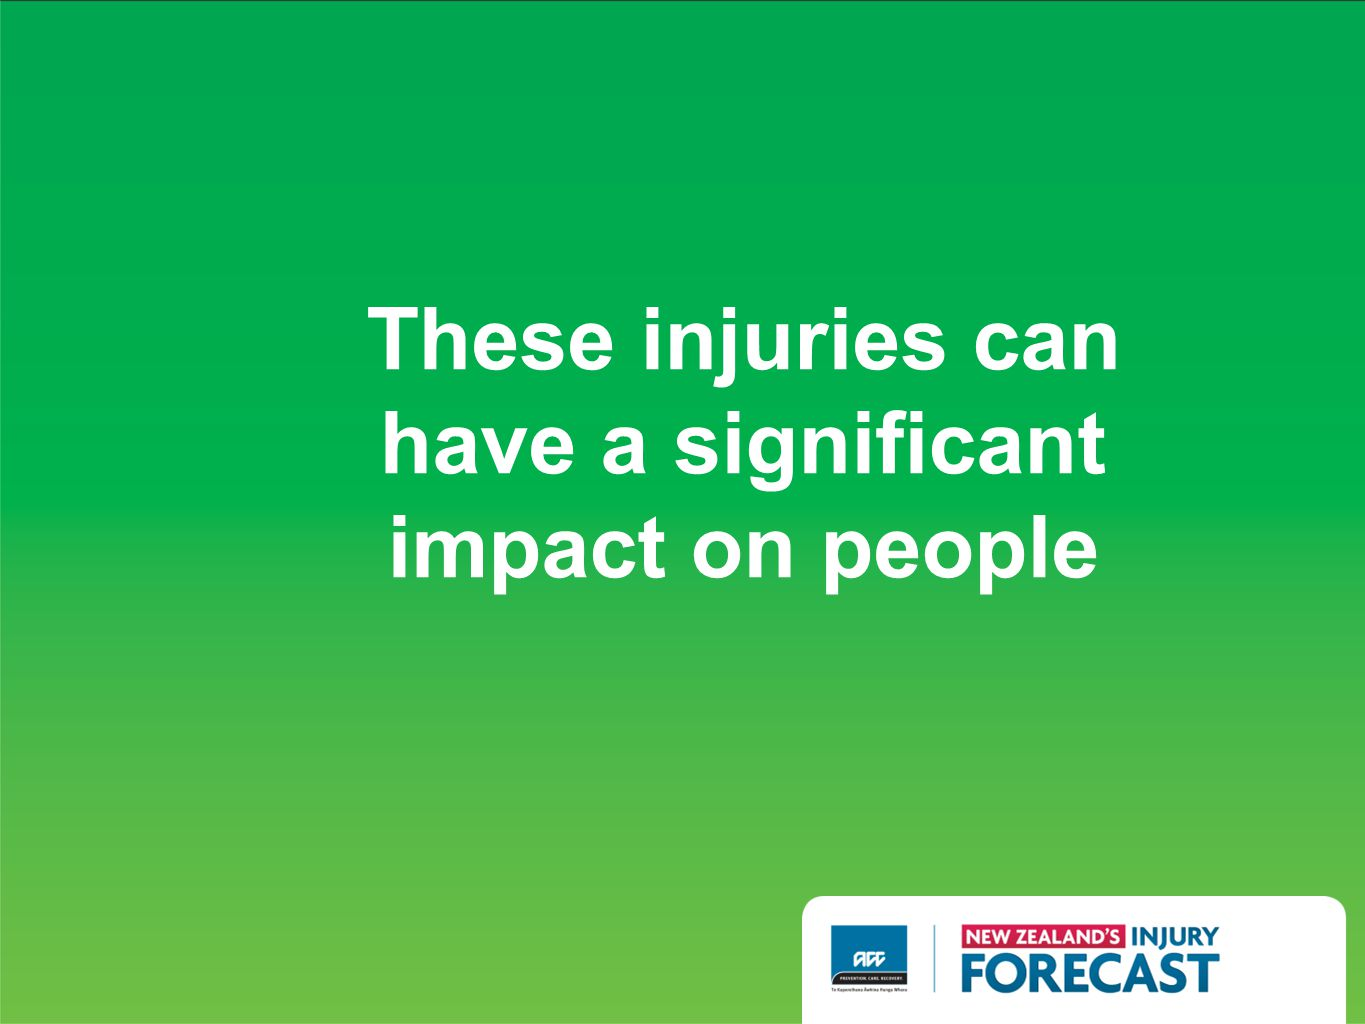 These injuries can have a significant impact on people